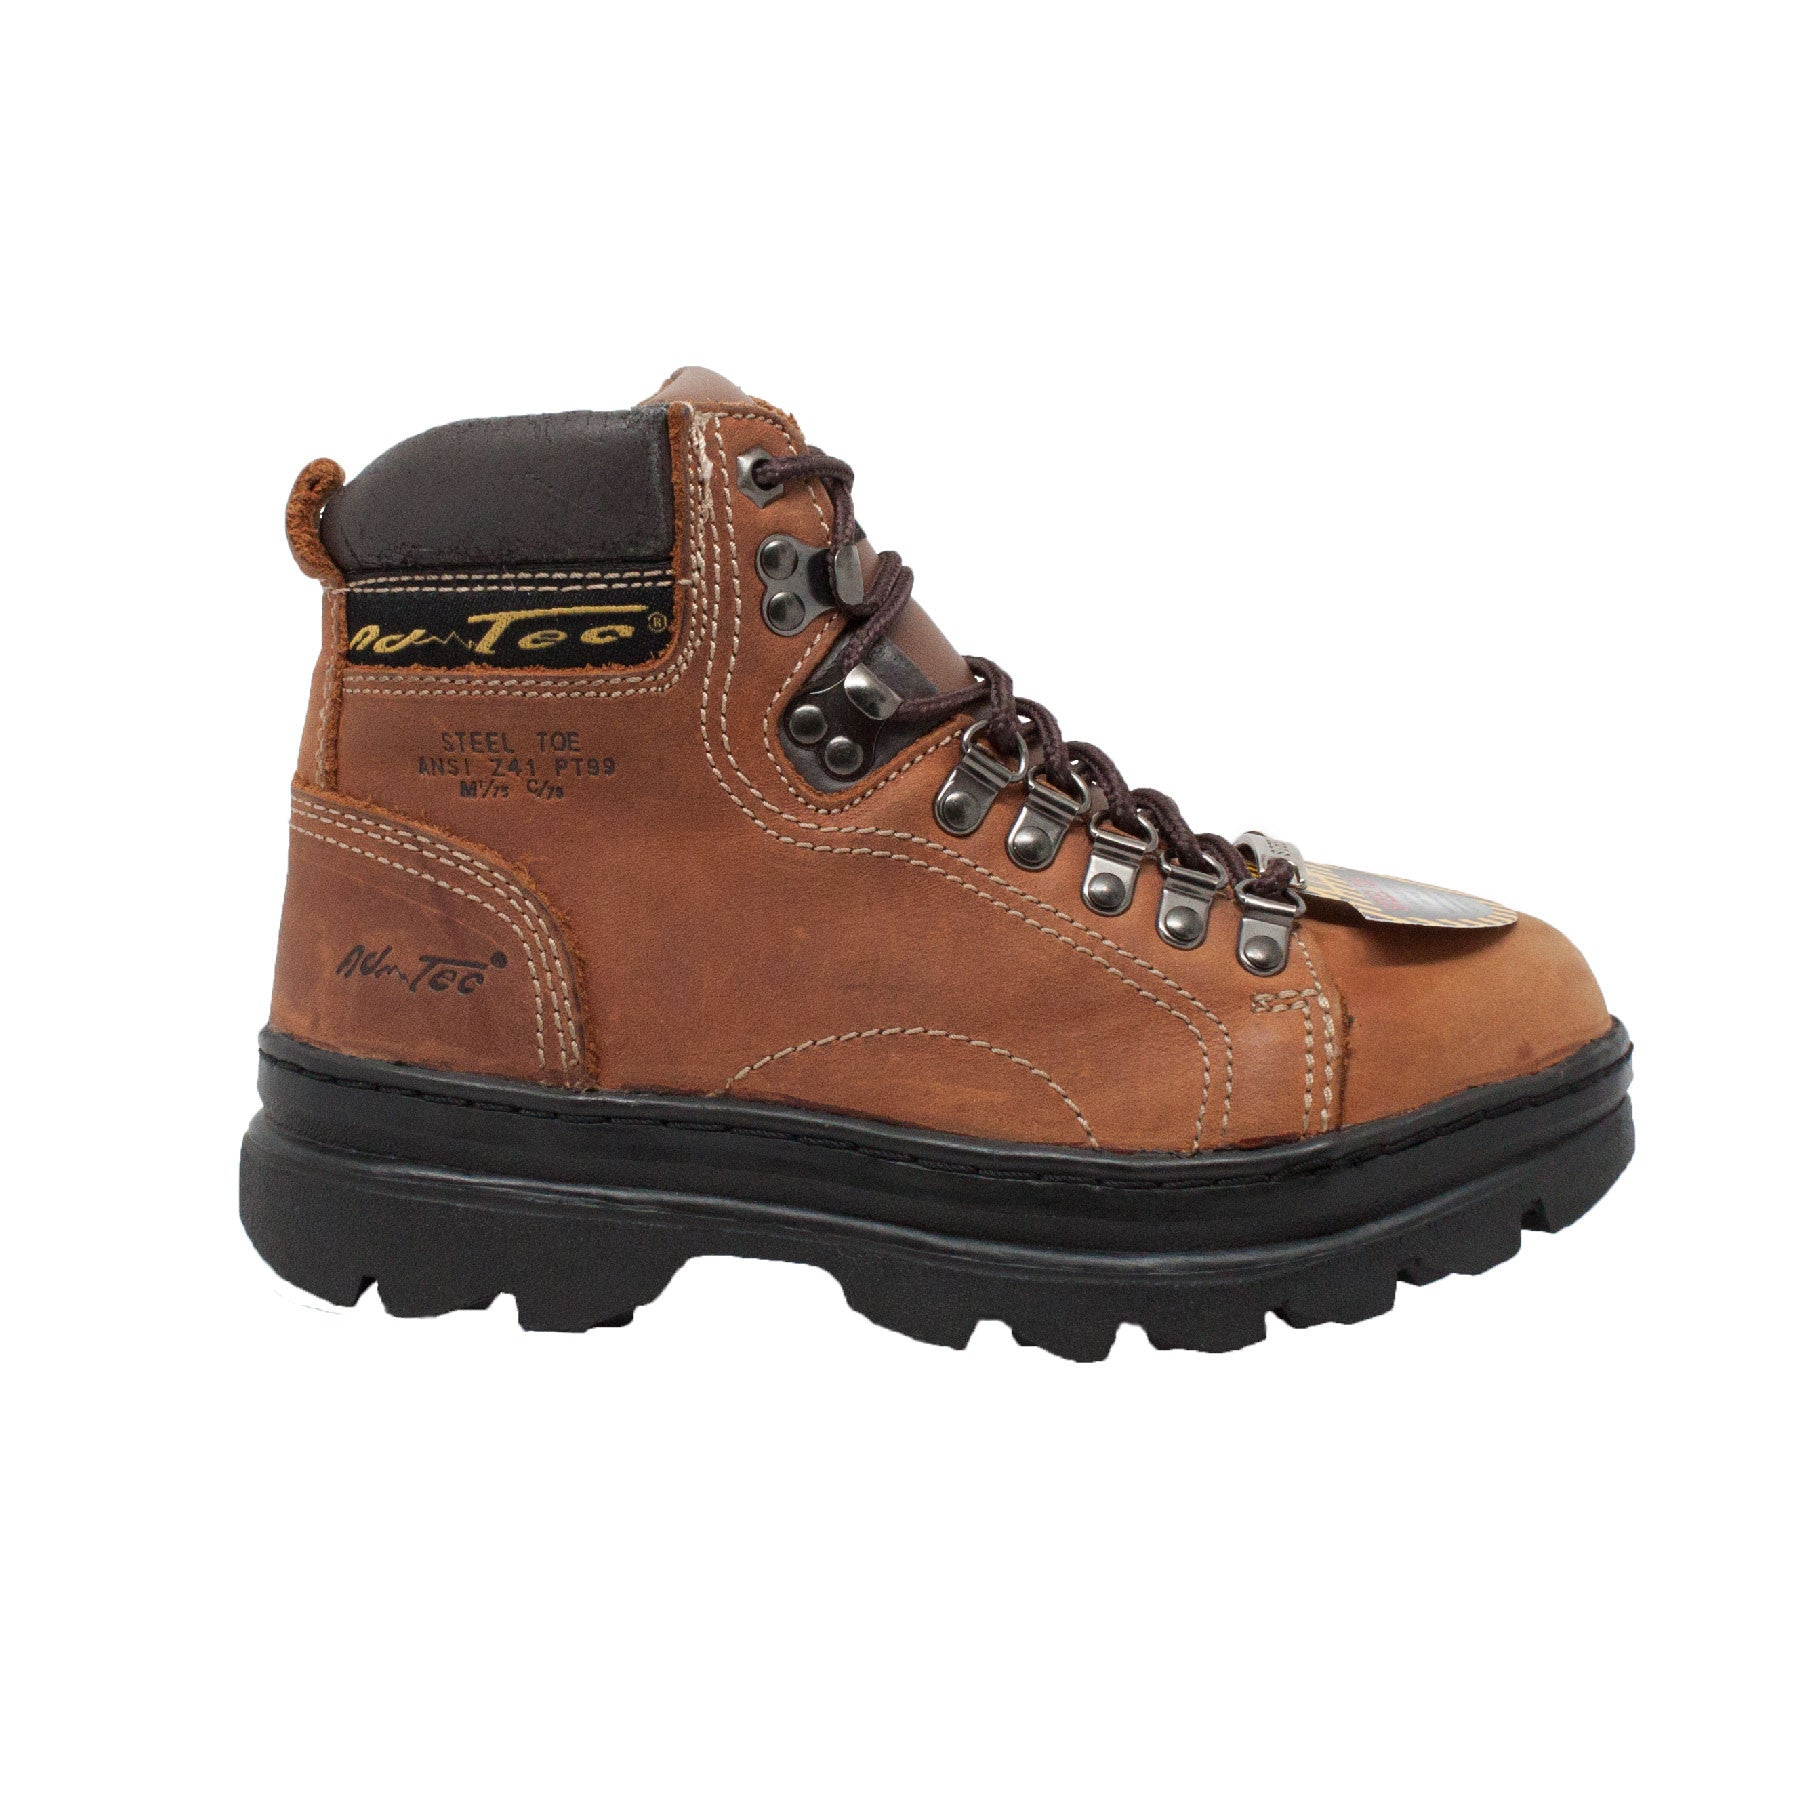 "Women's 6"" Steel Toe Work Boot Brown - 2977 - Shop Genuine Leather men & women's boots online 